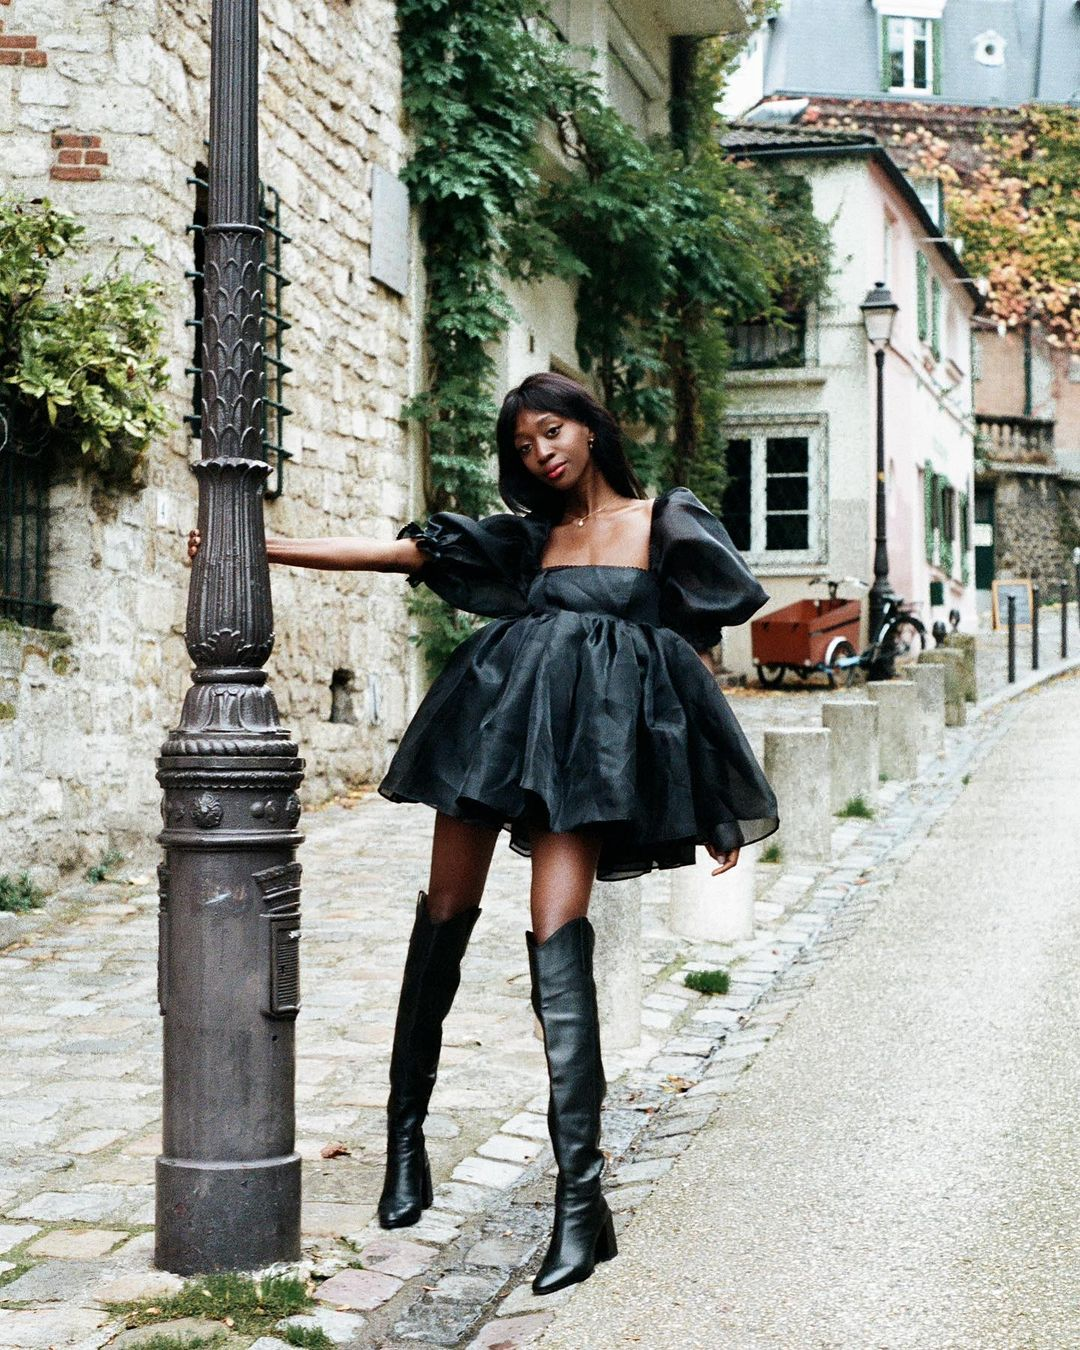 Black tulle dress and long black boots